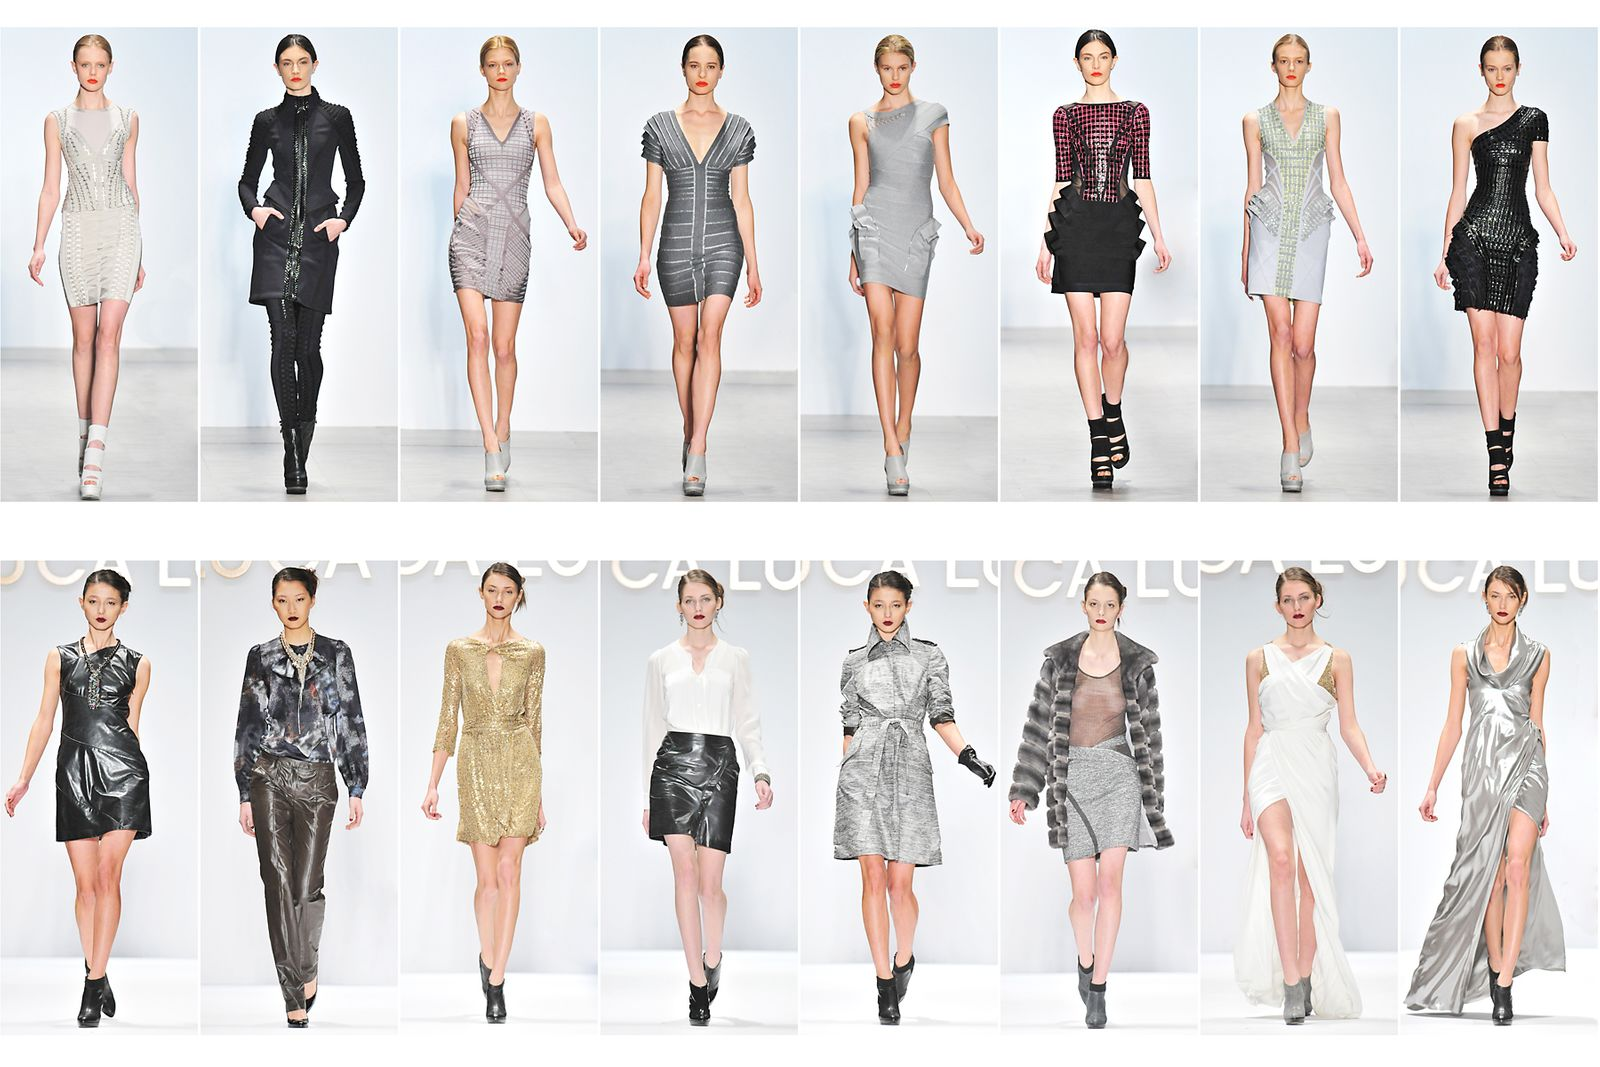 Herve Leger by Max Azria, Fall/Winter Collection New York Fashion Week.